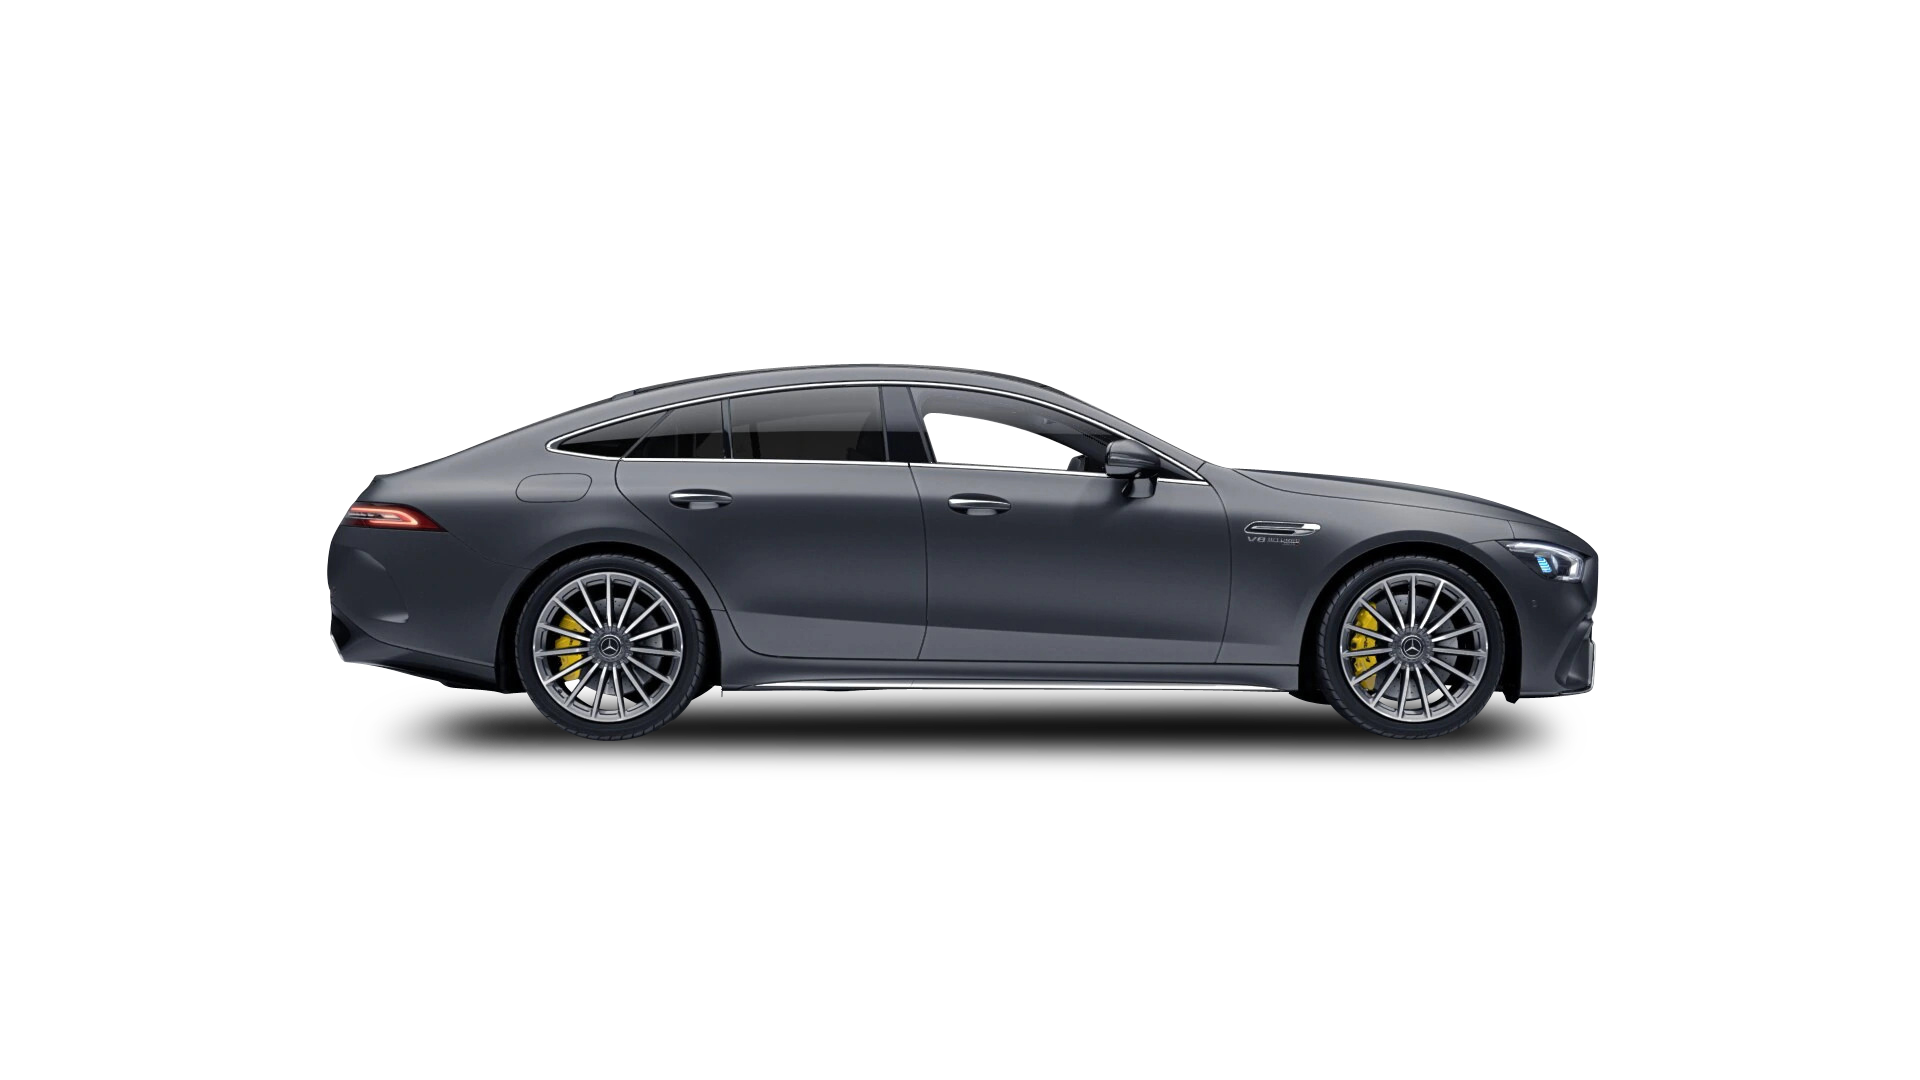 https://cogcms-images.azureedge.net/media/35444/mercedes-amg-gt-63-s-4matic-premium.png